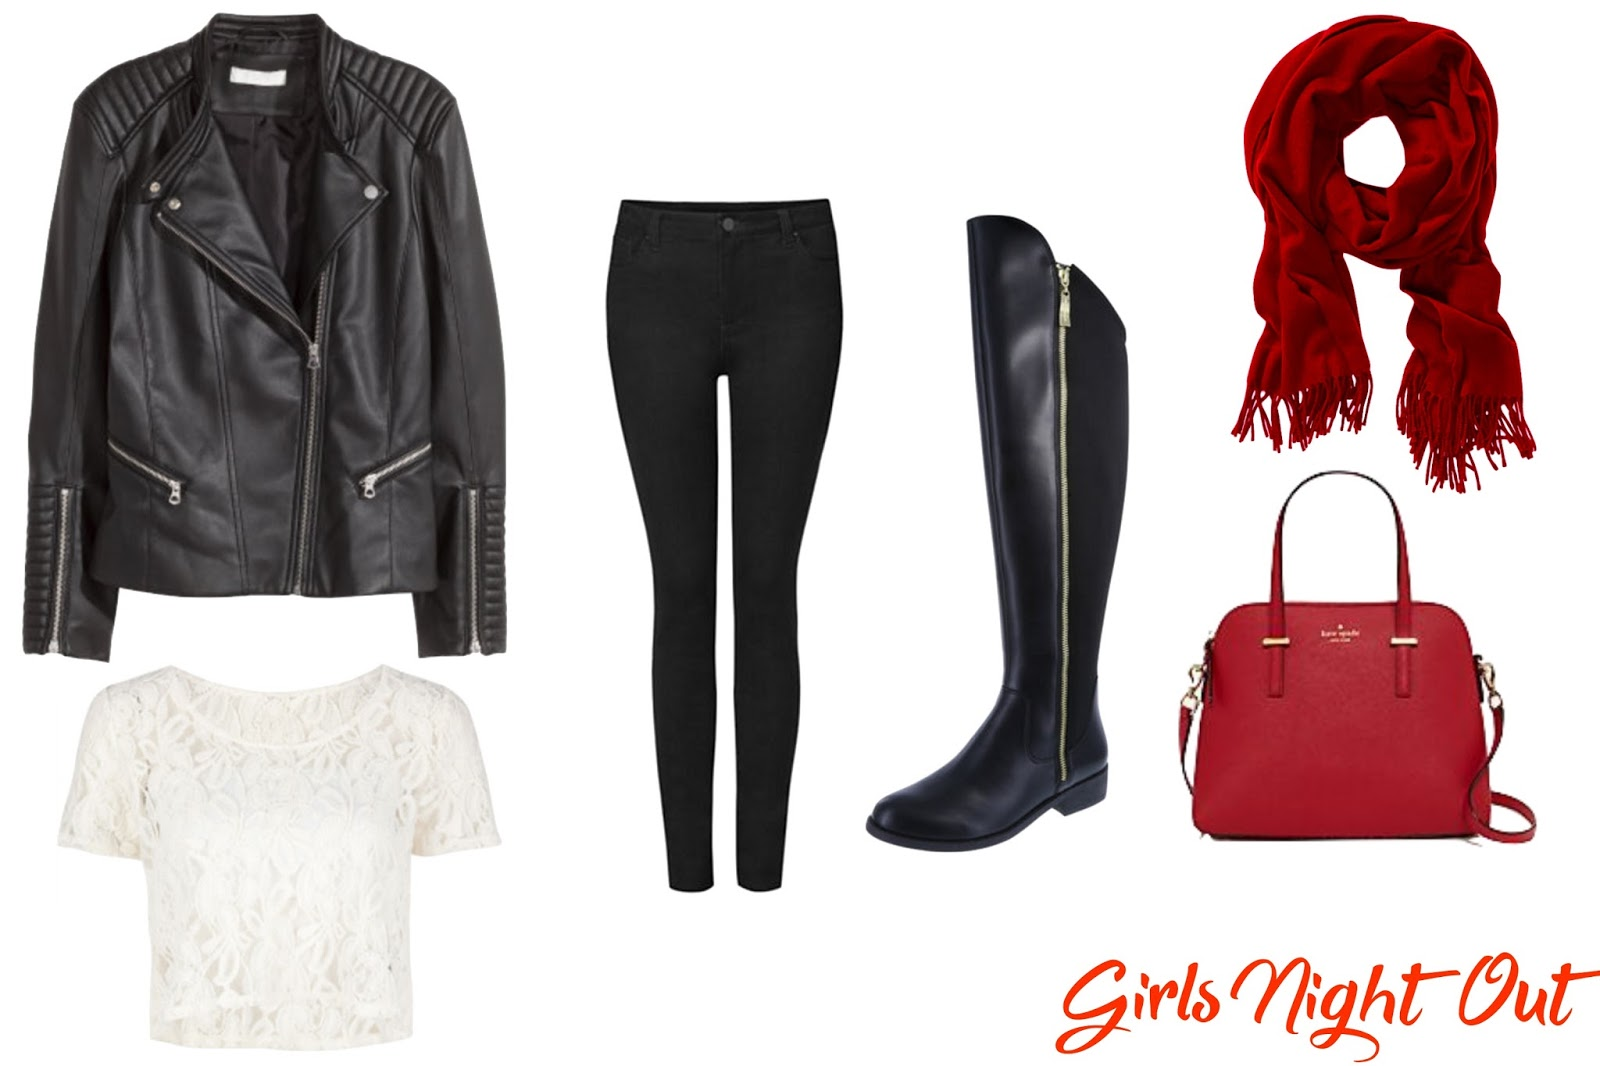 Valentine's Day Girls Night Out Outfit - Le Northern Belle